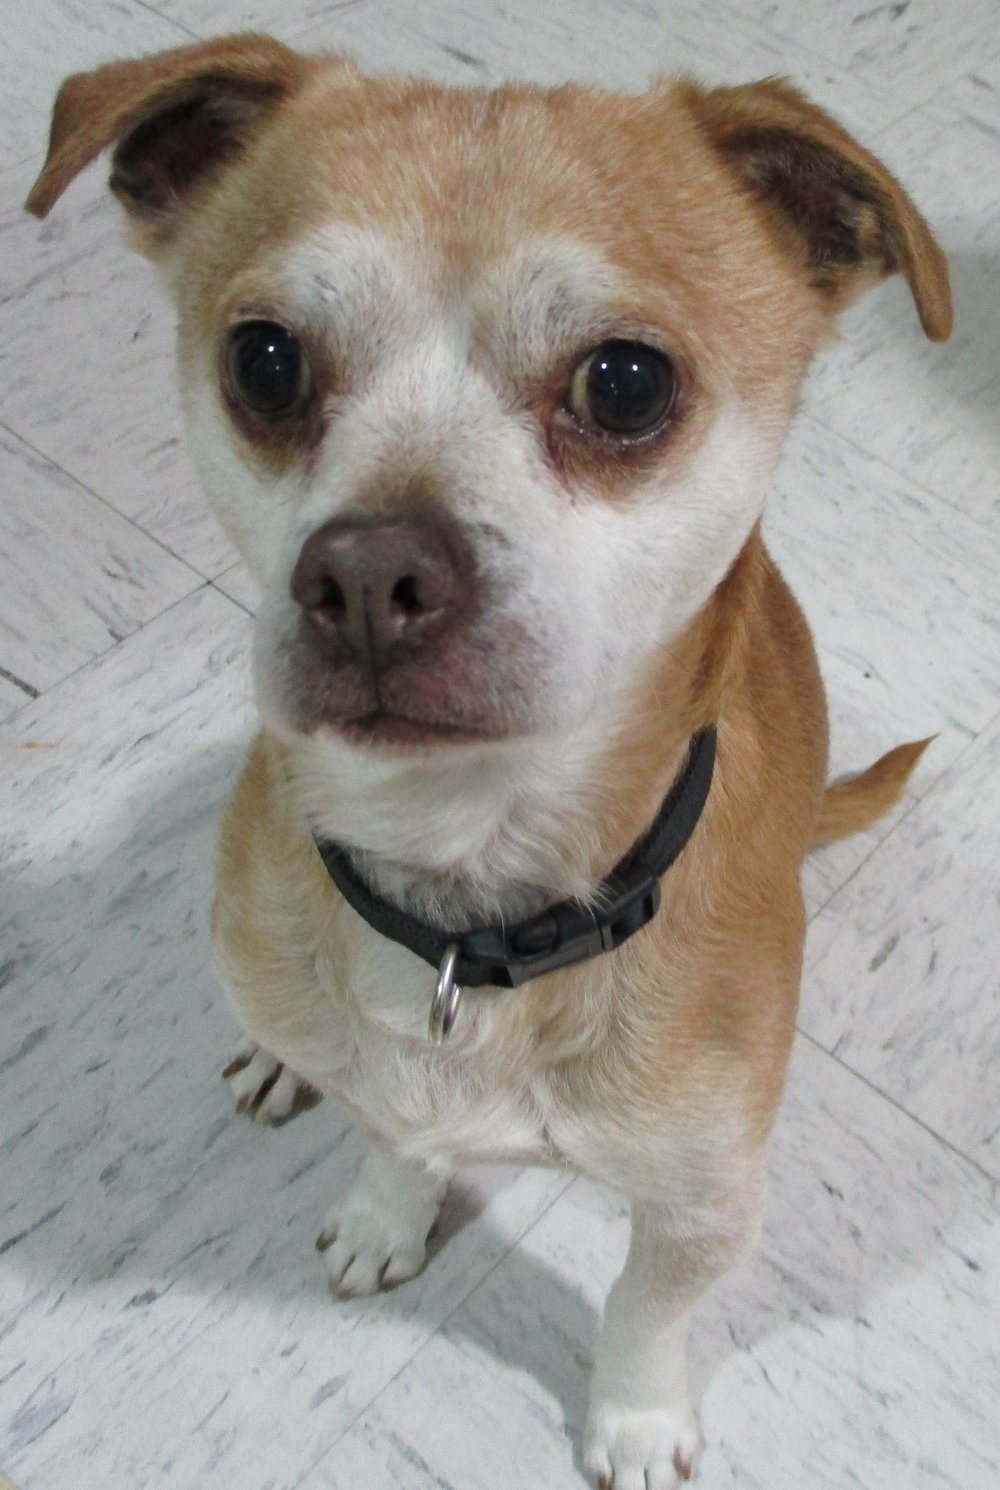 """FINLEY: aka """"Schnozy"""": Approx 6 yrs old, Puggle, Male, 12 lbs - this guy is the greatest. He has the most adorable piglet noises. He is super well behaved, great with other animals, easy going, great little walker, lap snuggler and car companion. His foster loves taking him just about anywhere, he is small and easy to care for, he would be great for any family type as he just has no issues and loves everything and every one. His adoption fee is $250 he is current on shots, vet checks, wormer and monthly flea treatment, neutered."""